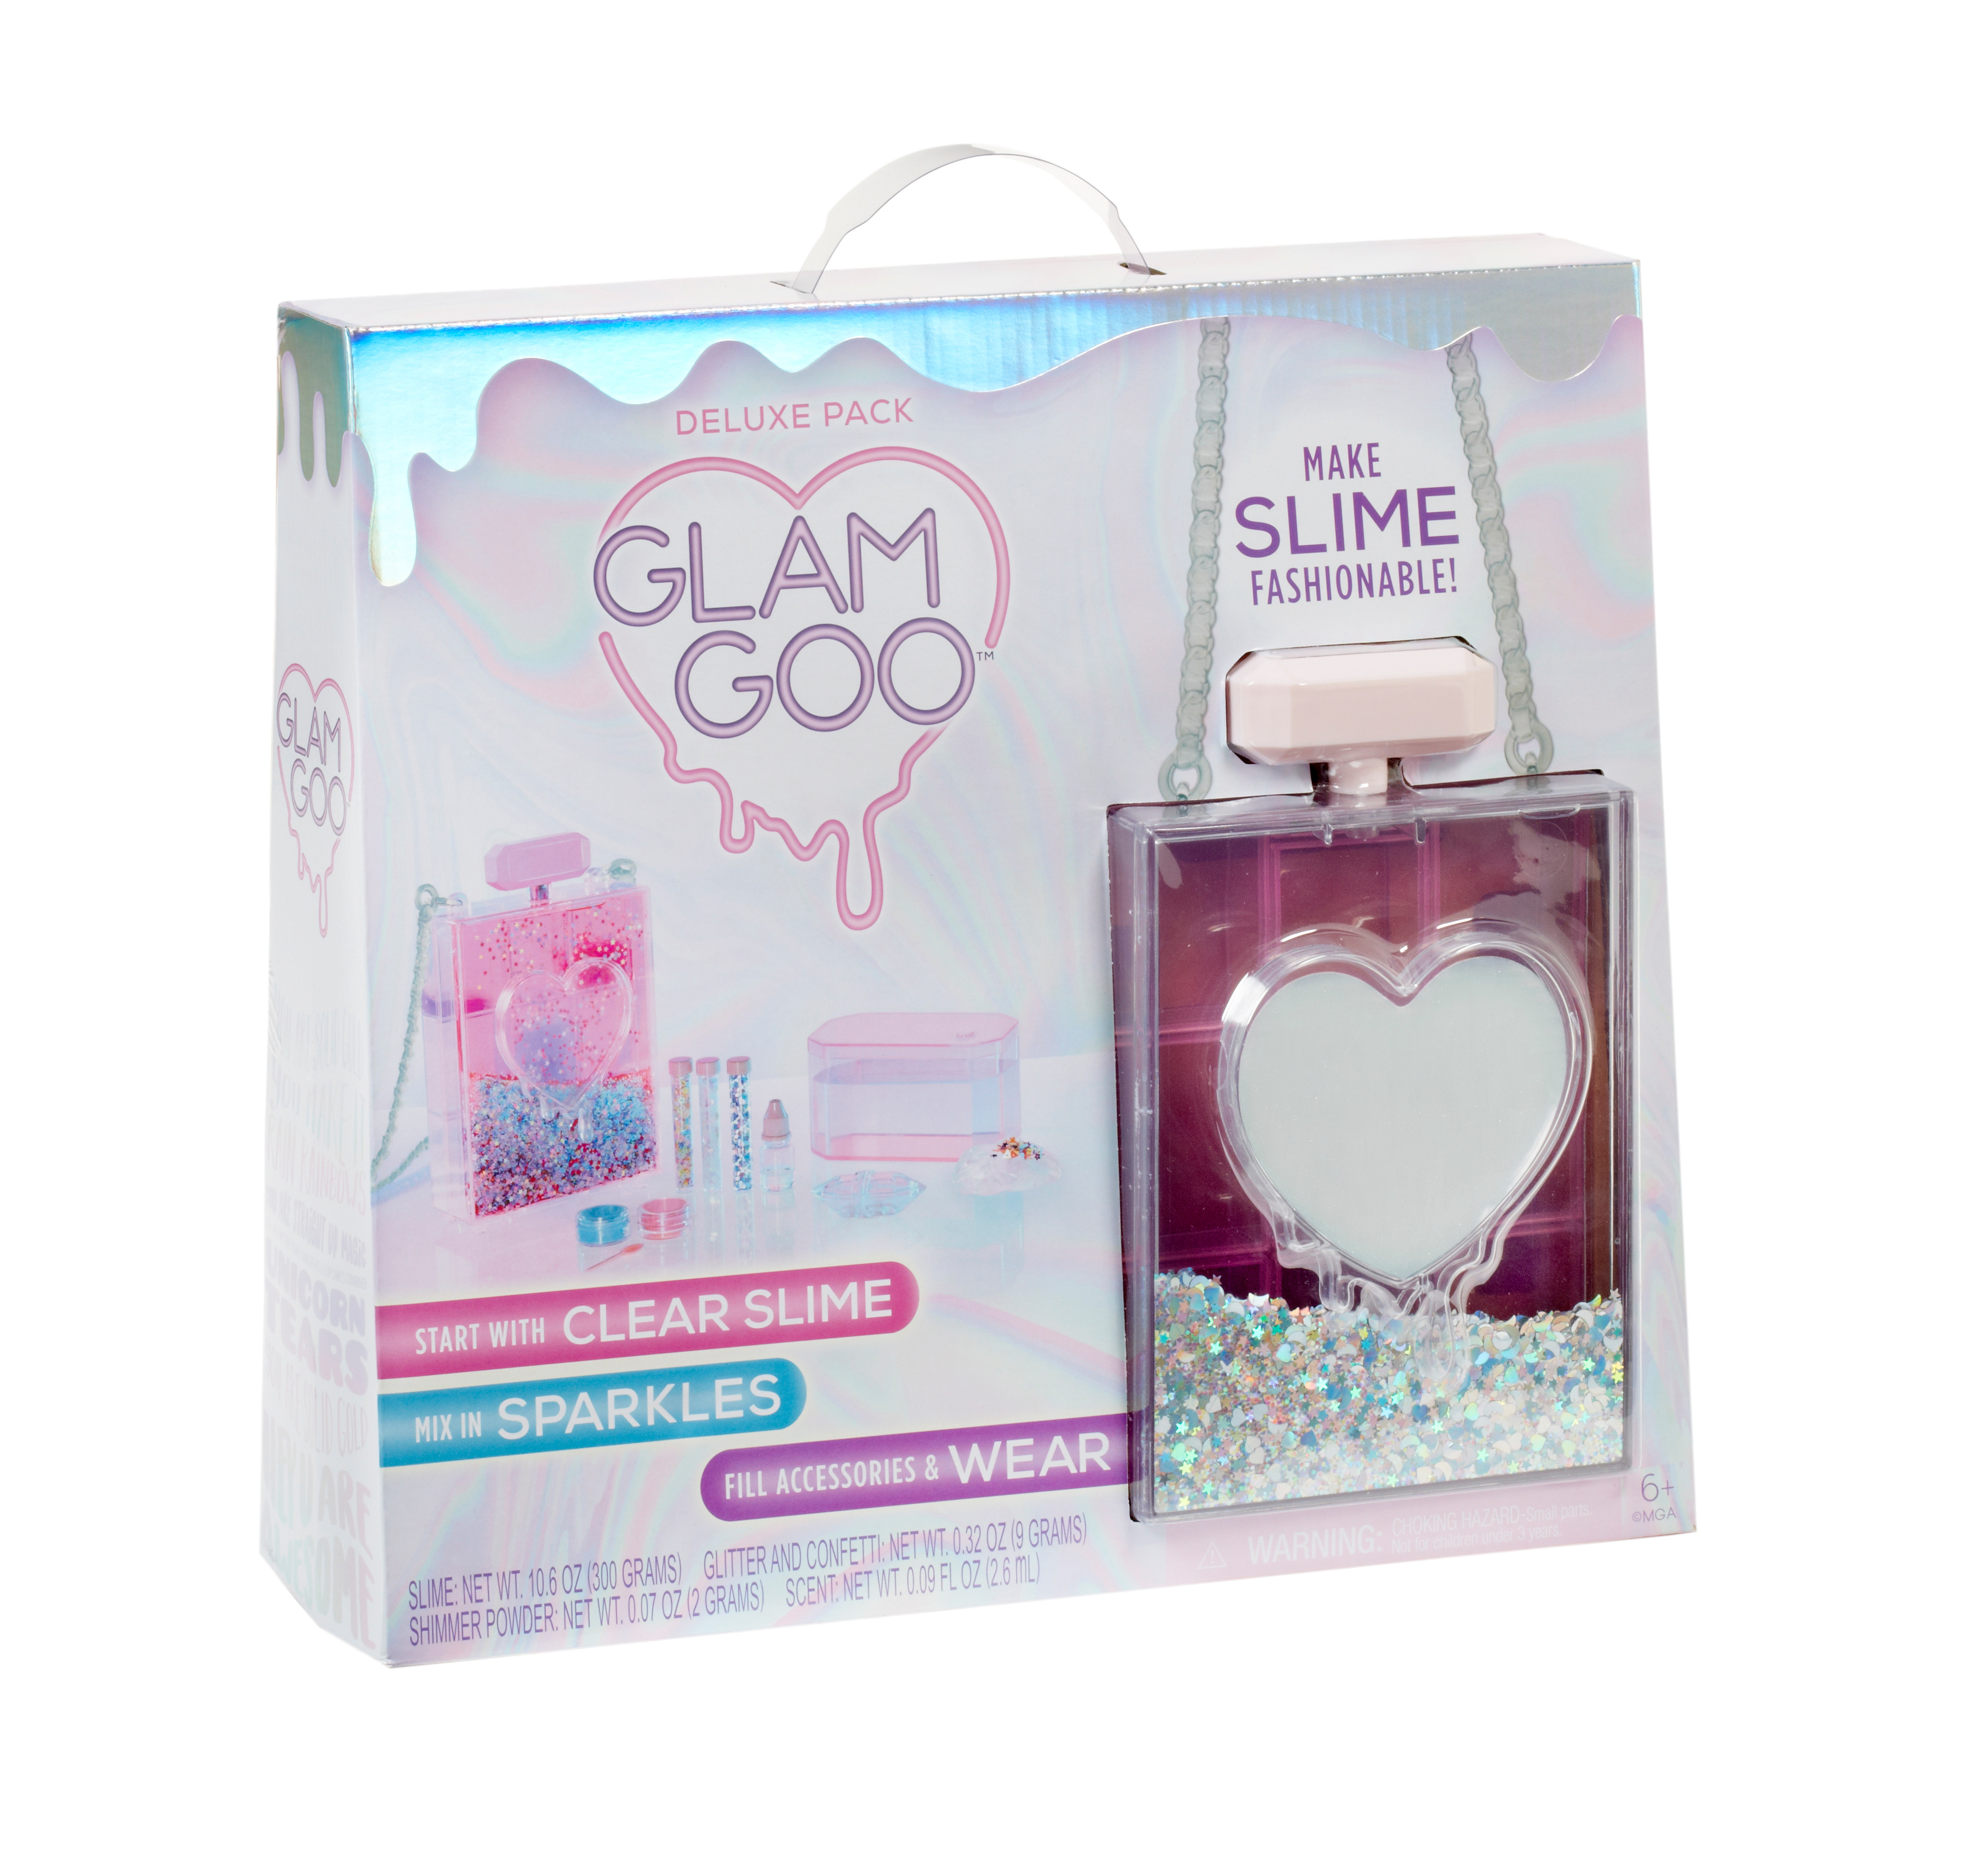 Make your own accessories this Summer with Glam Goo